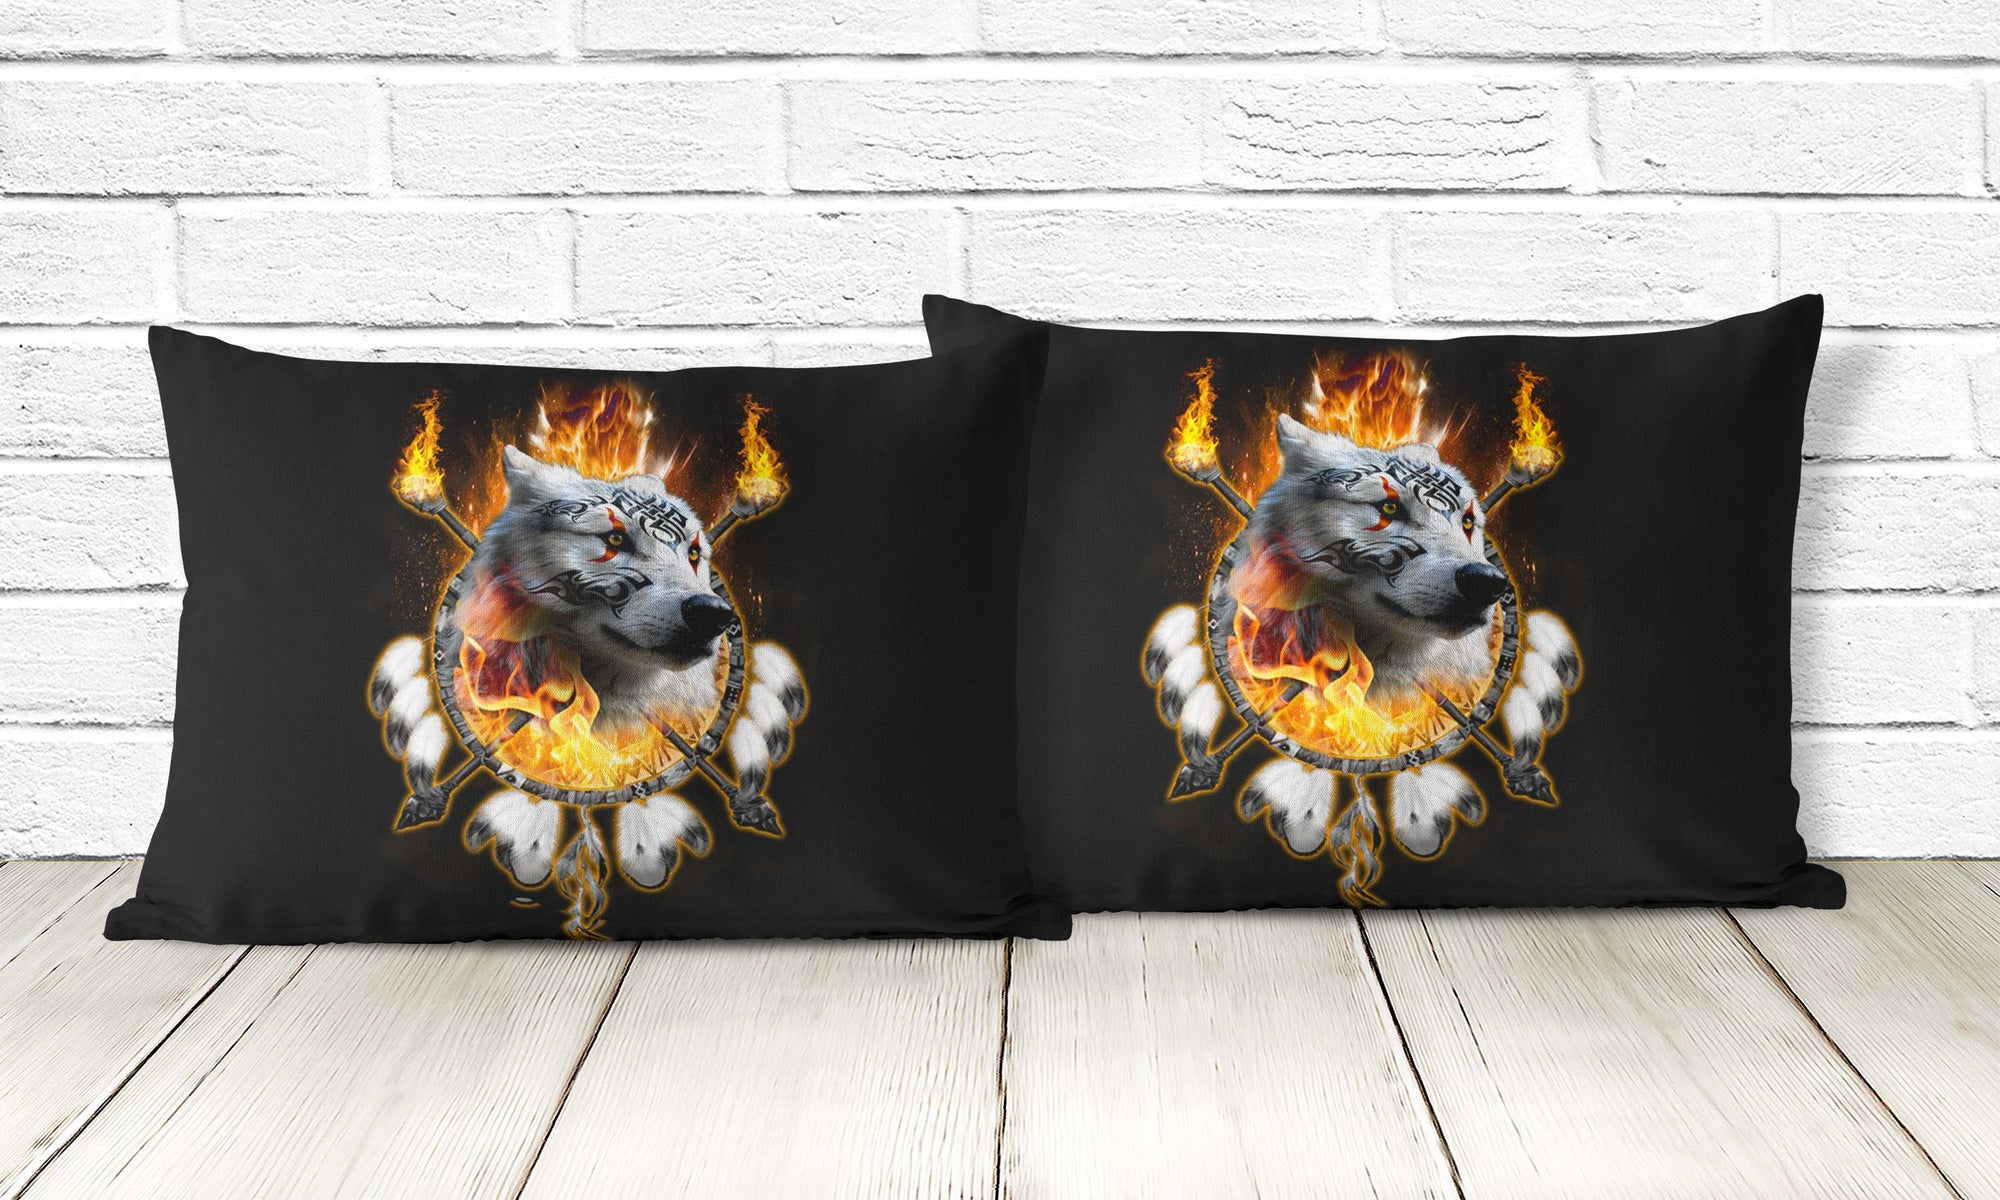 Fire Wolf Chief Pillowcase